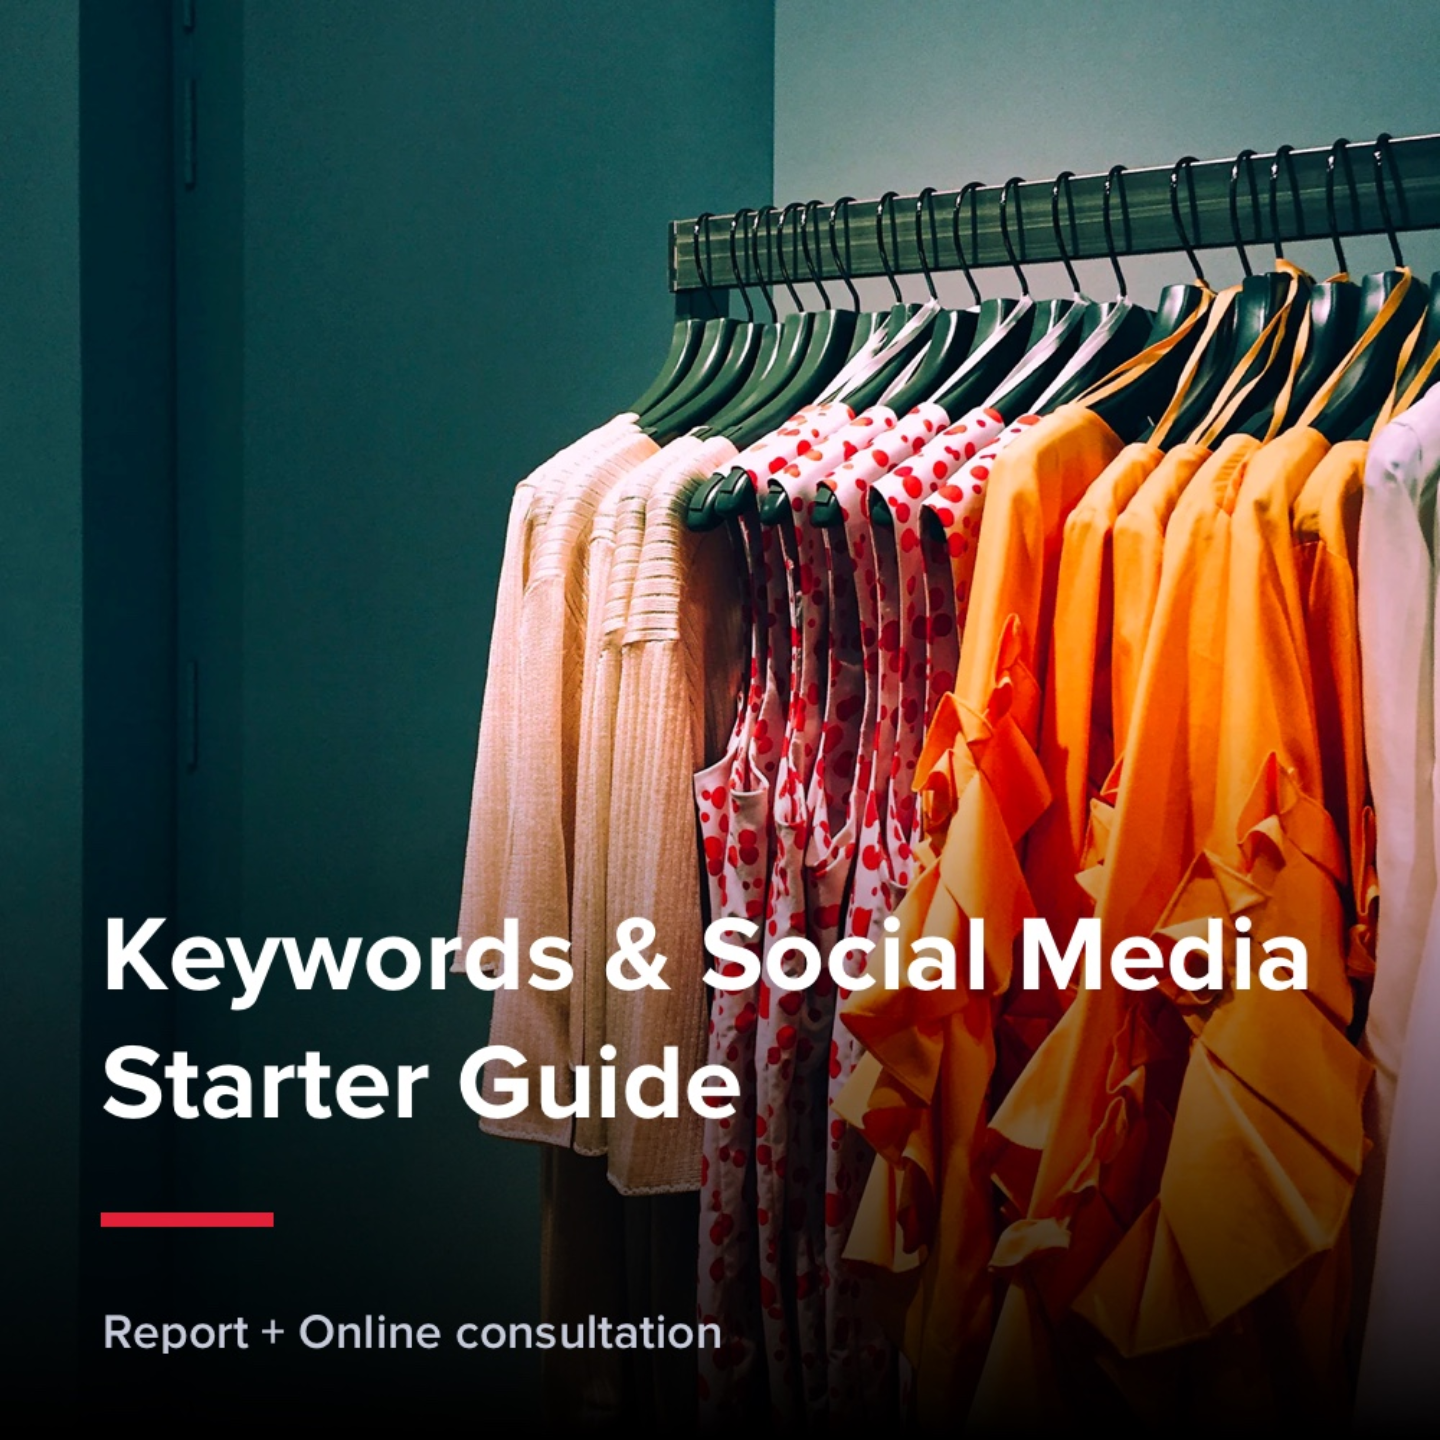 Keywords & Social Media Starter Guide - Fashion